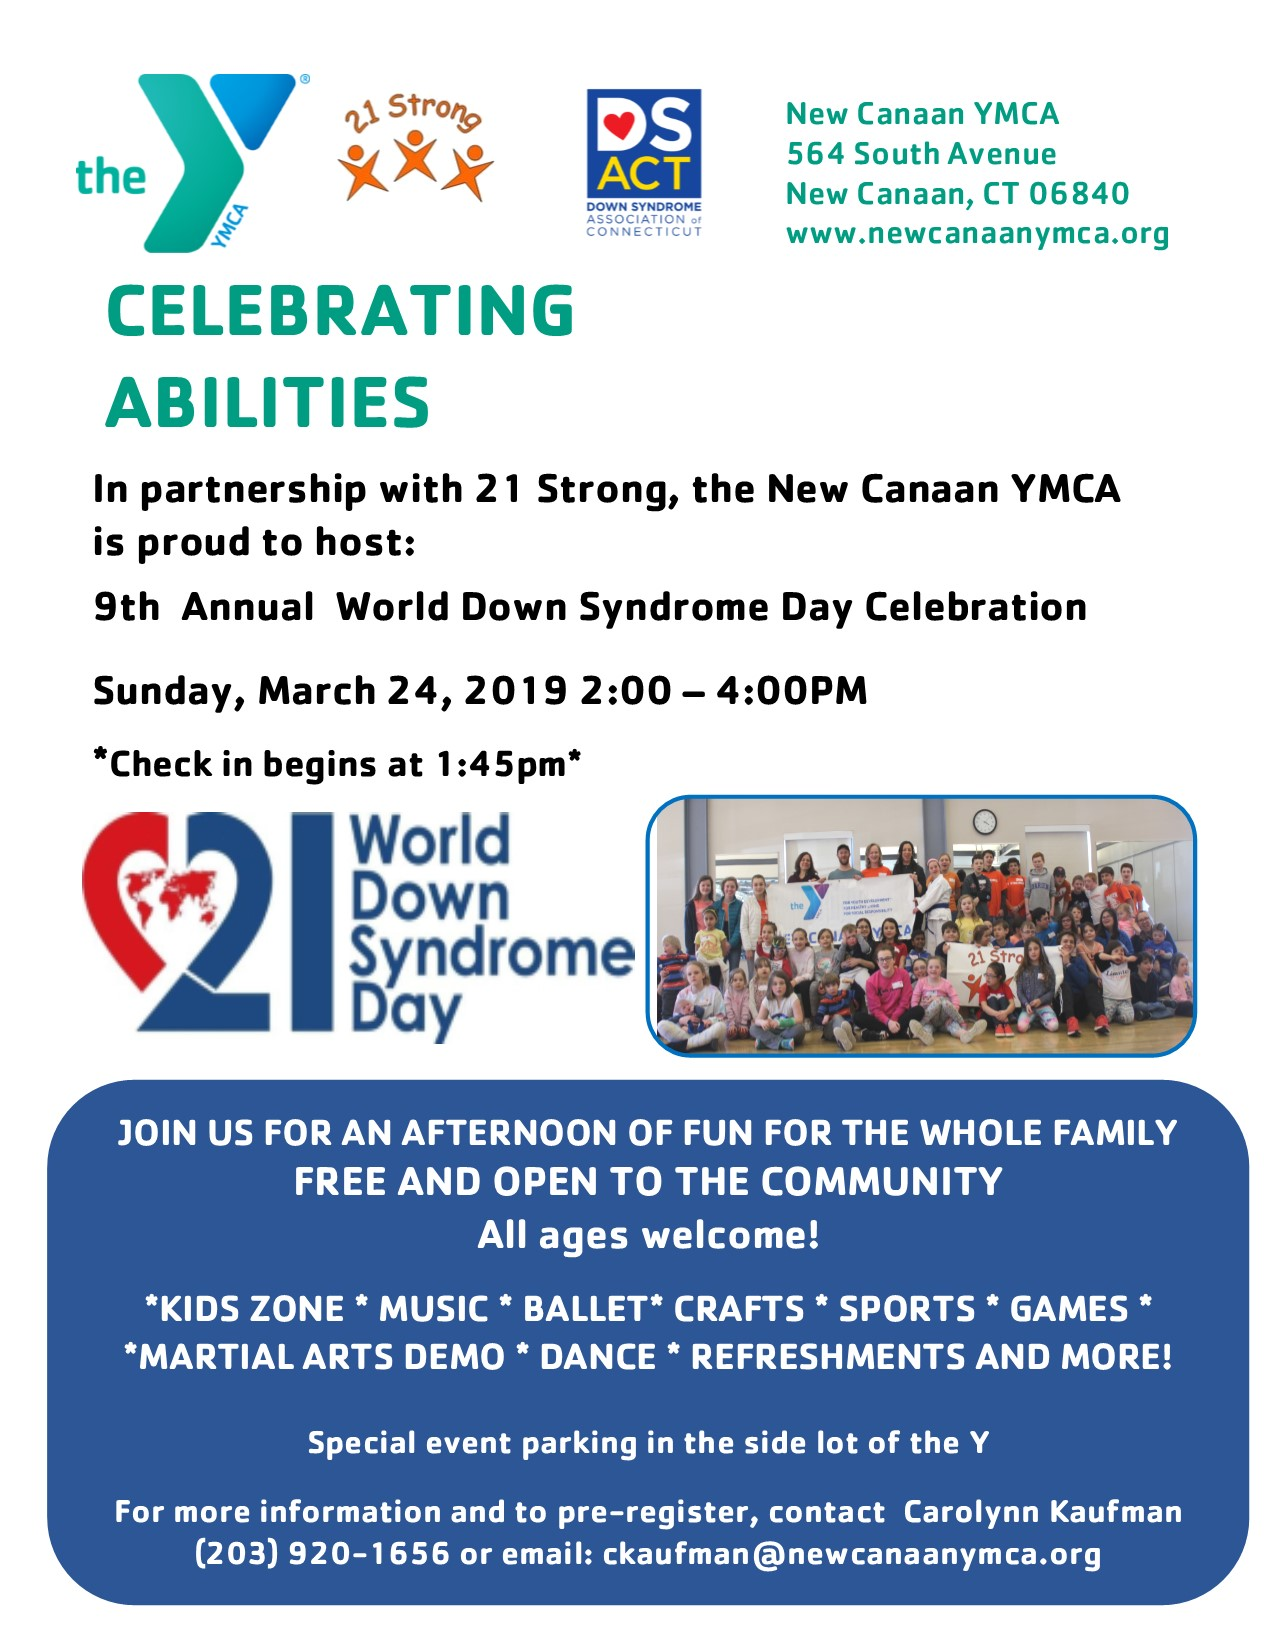 9th Annual World Down Syndrome Day Celebration @ New Canaan YMCA